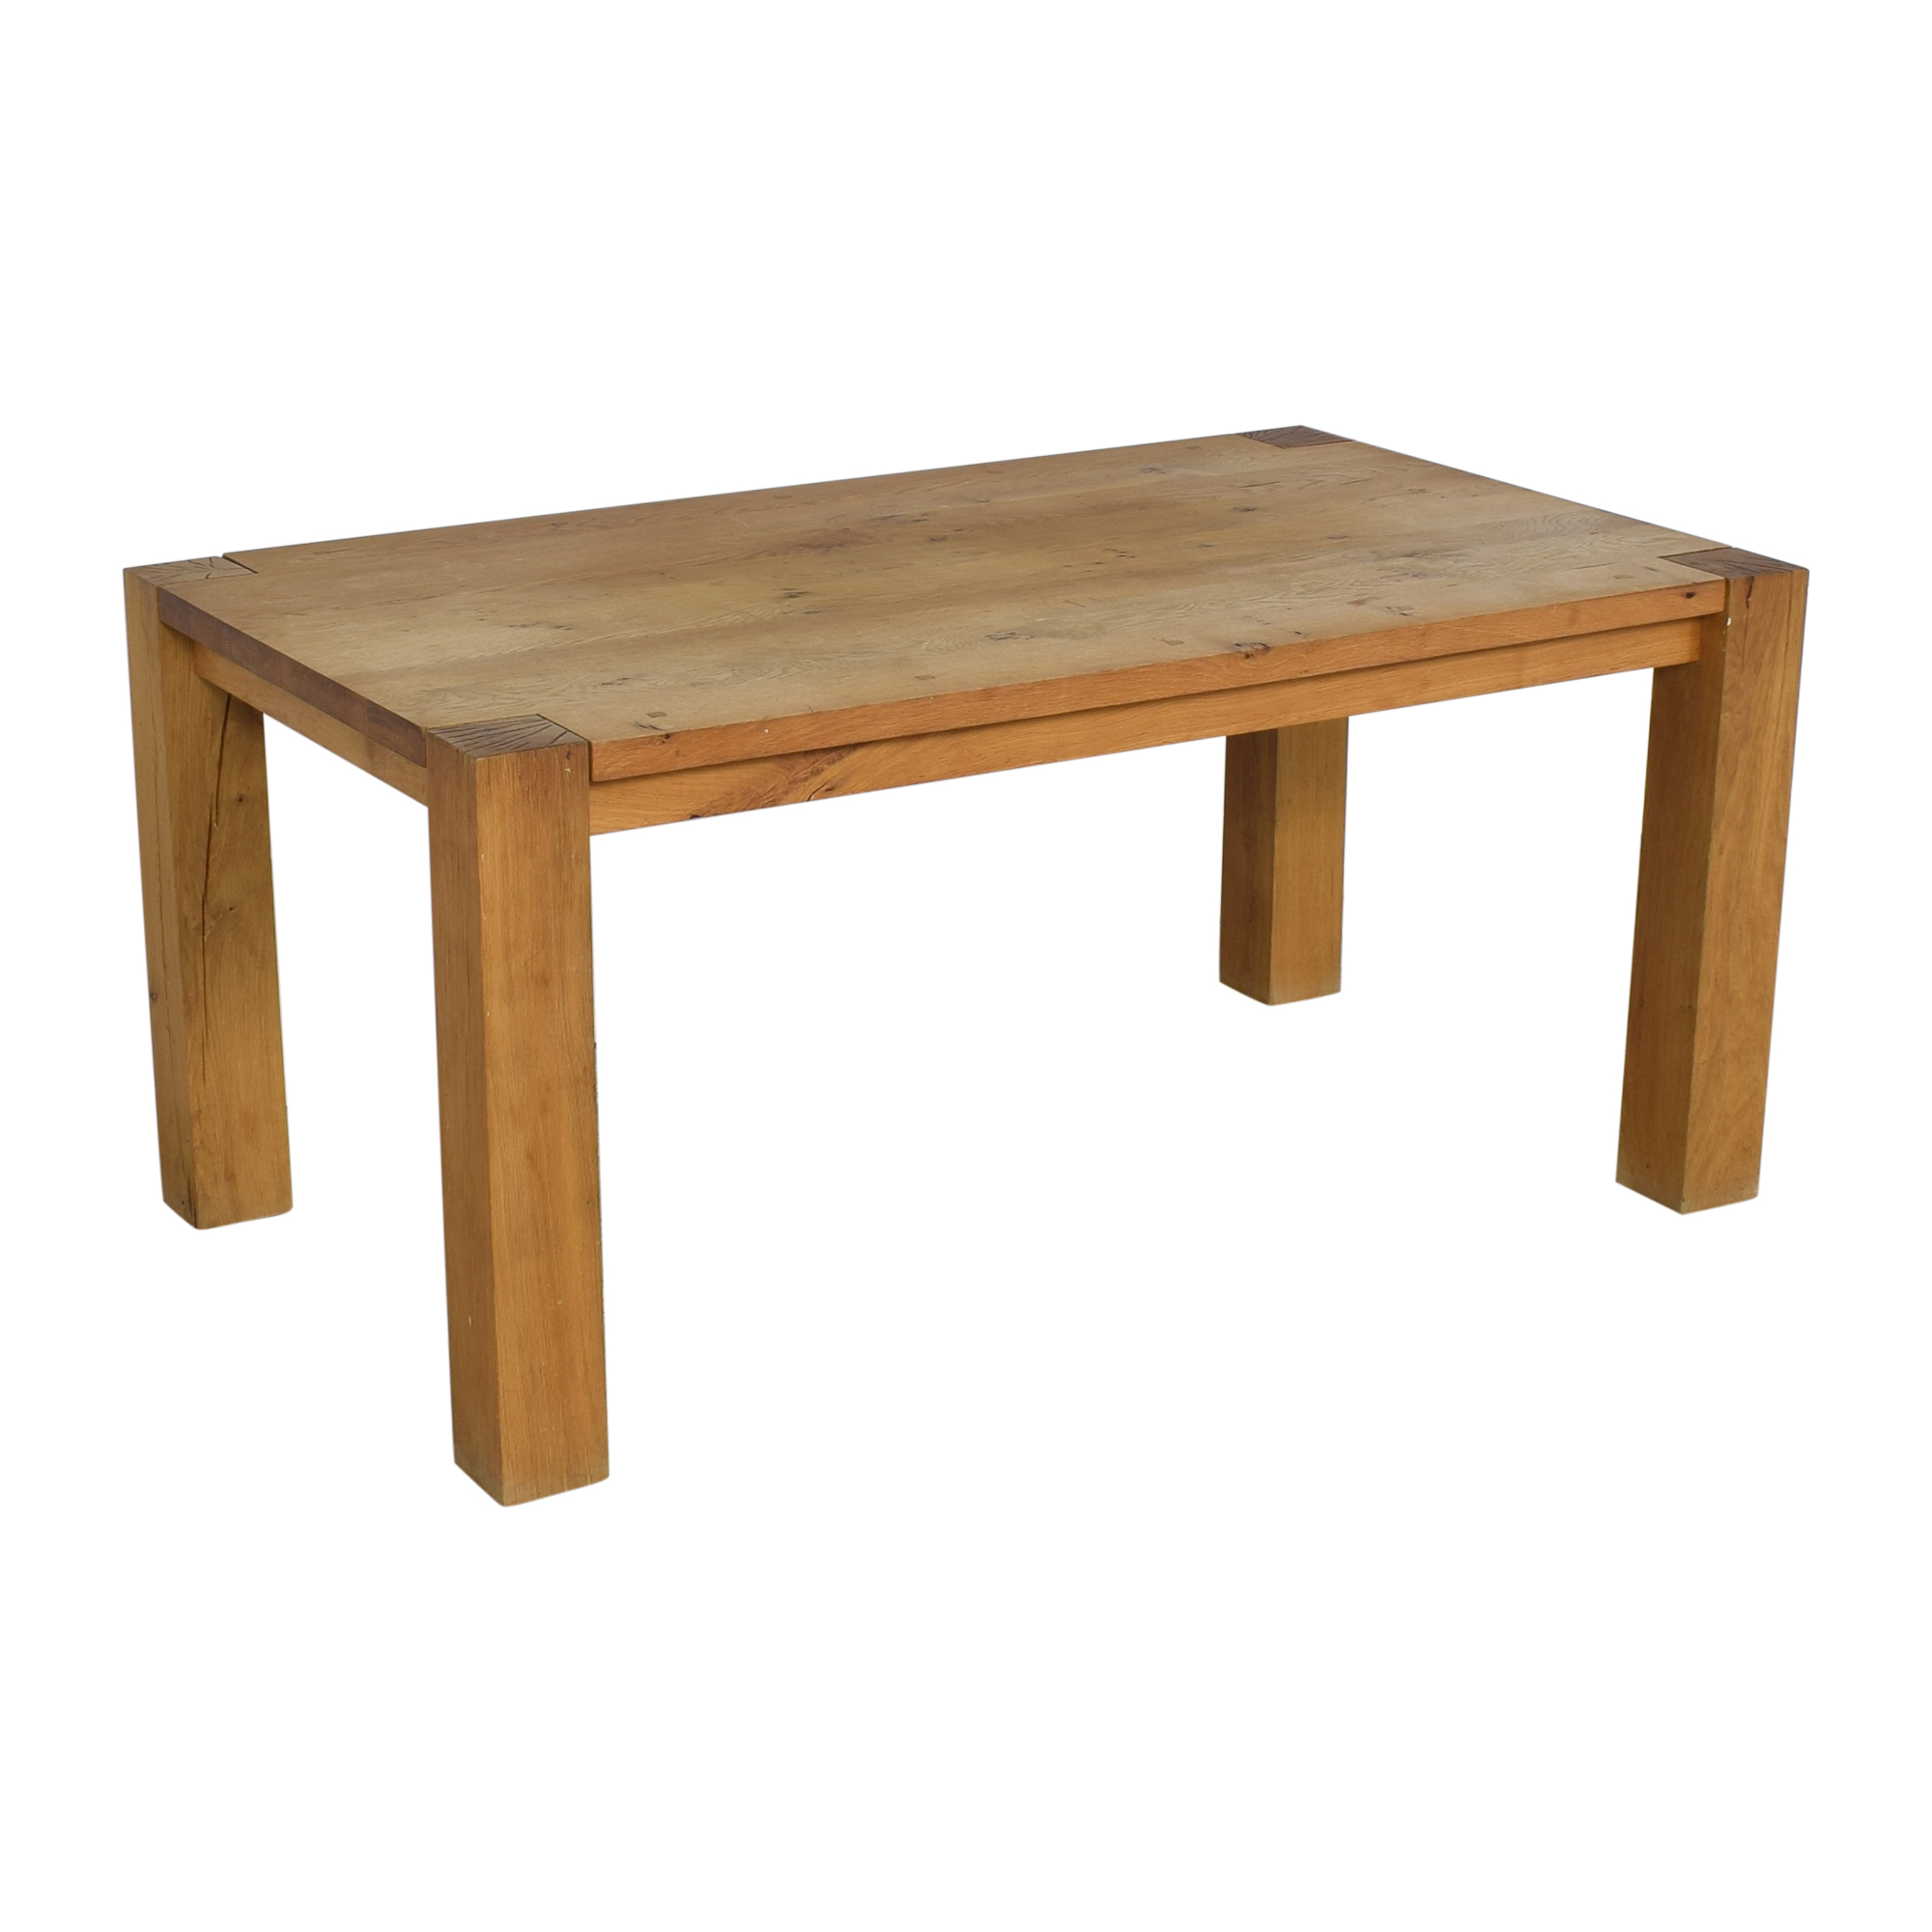 Crate & Barrel Big Sur Dining Table / Tables